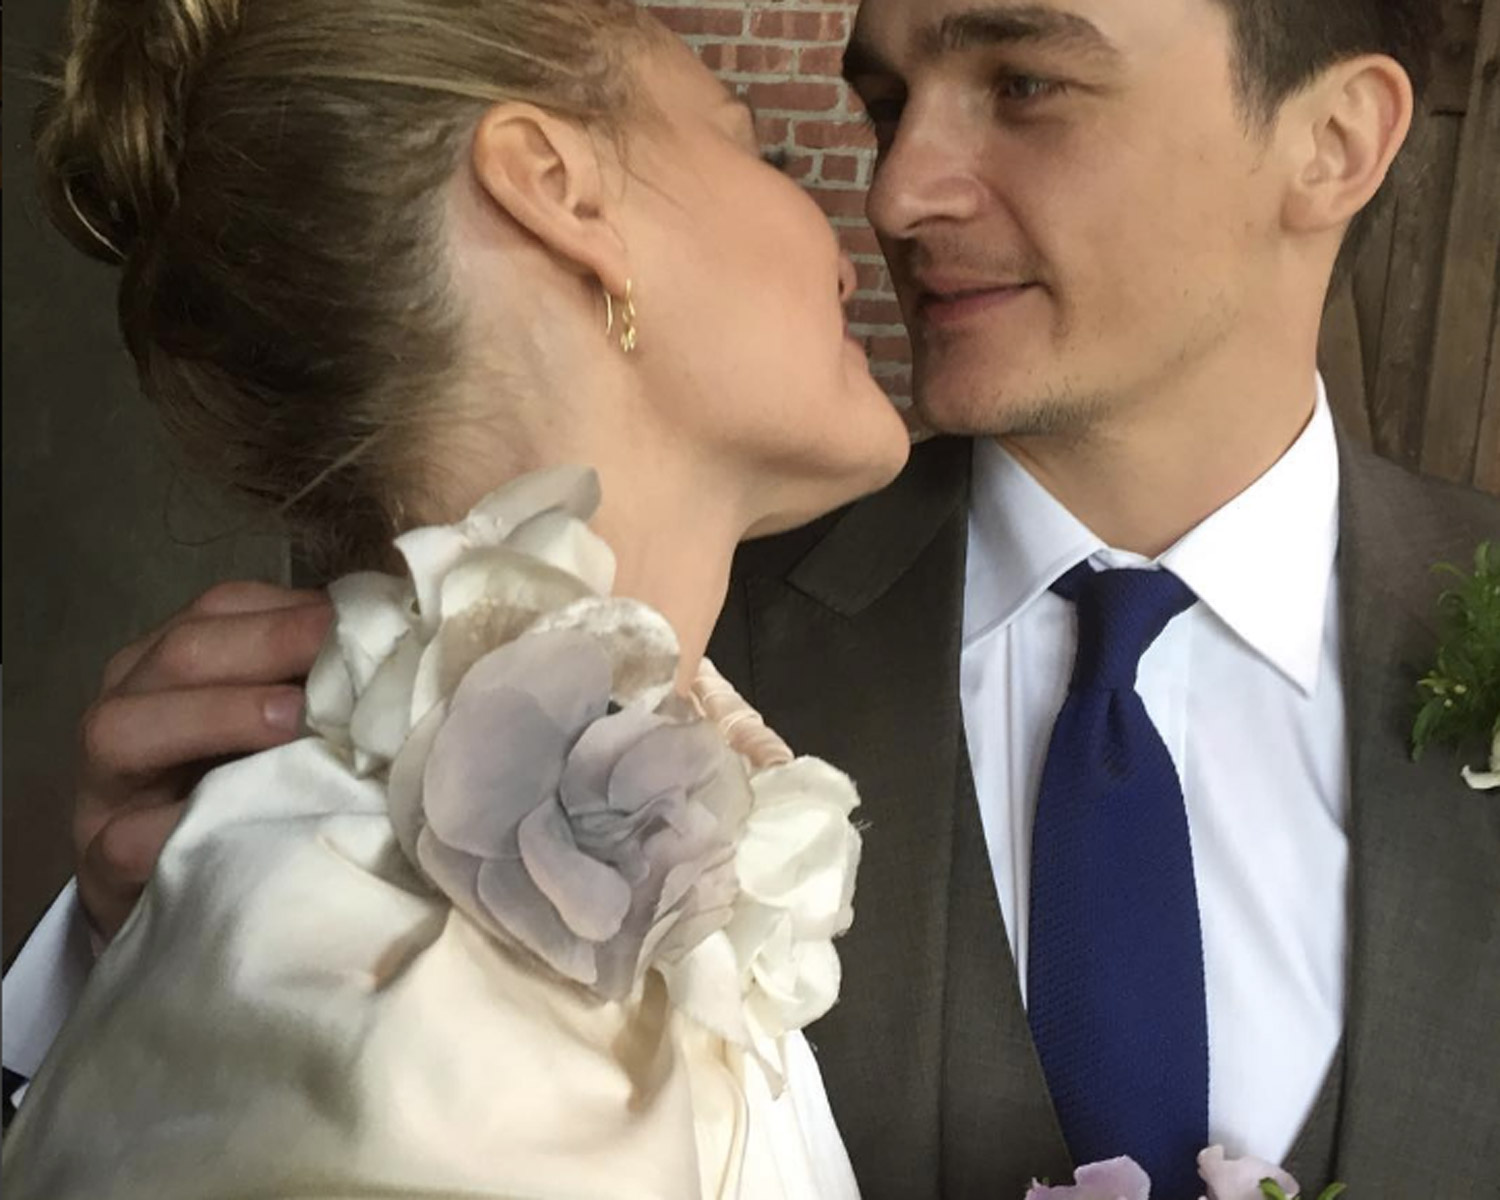 Homeland S Rupert Friend Secretly Married Aimee Mullins